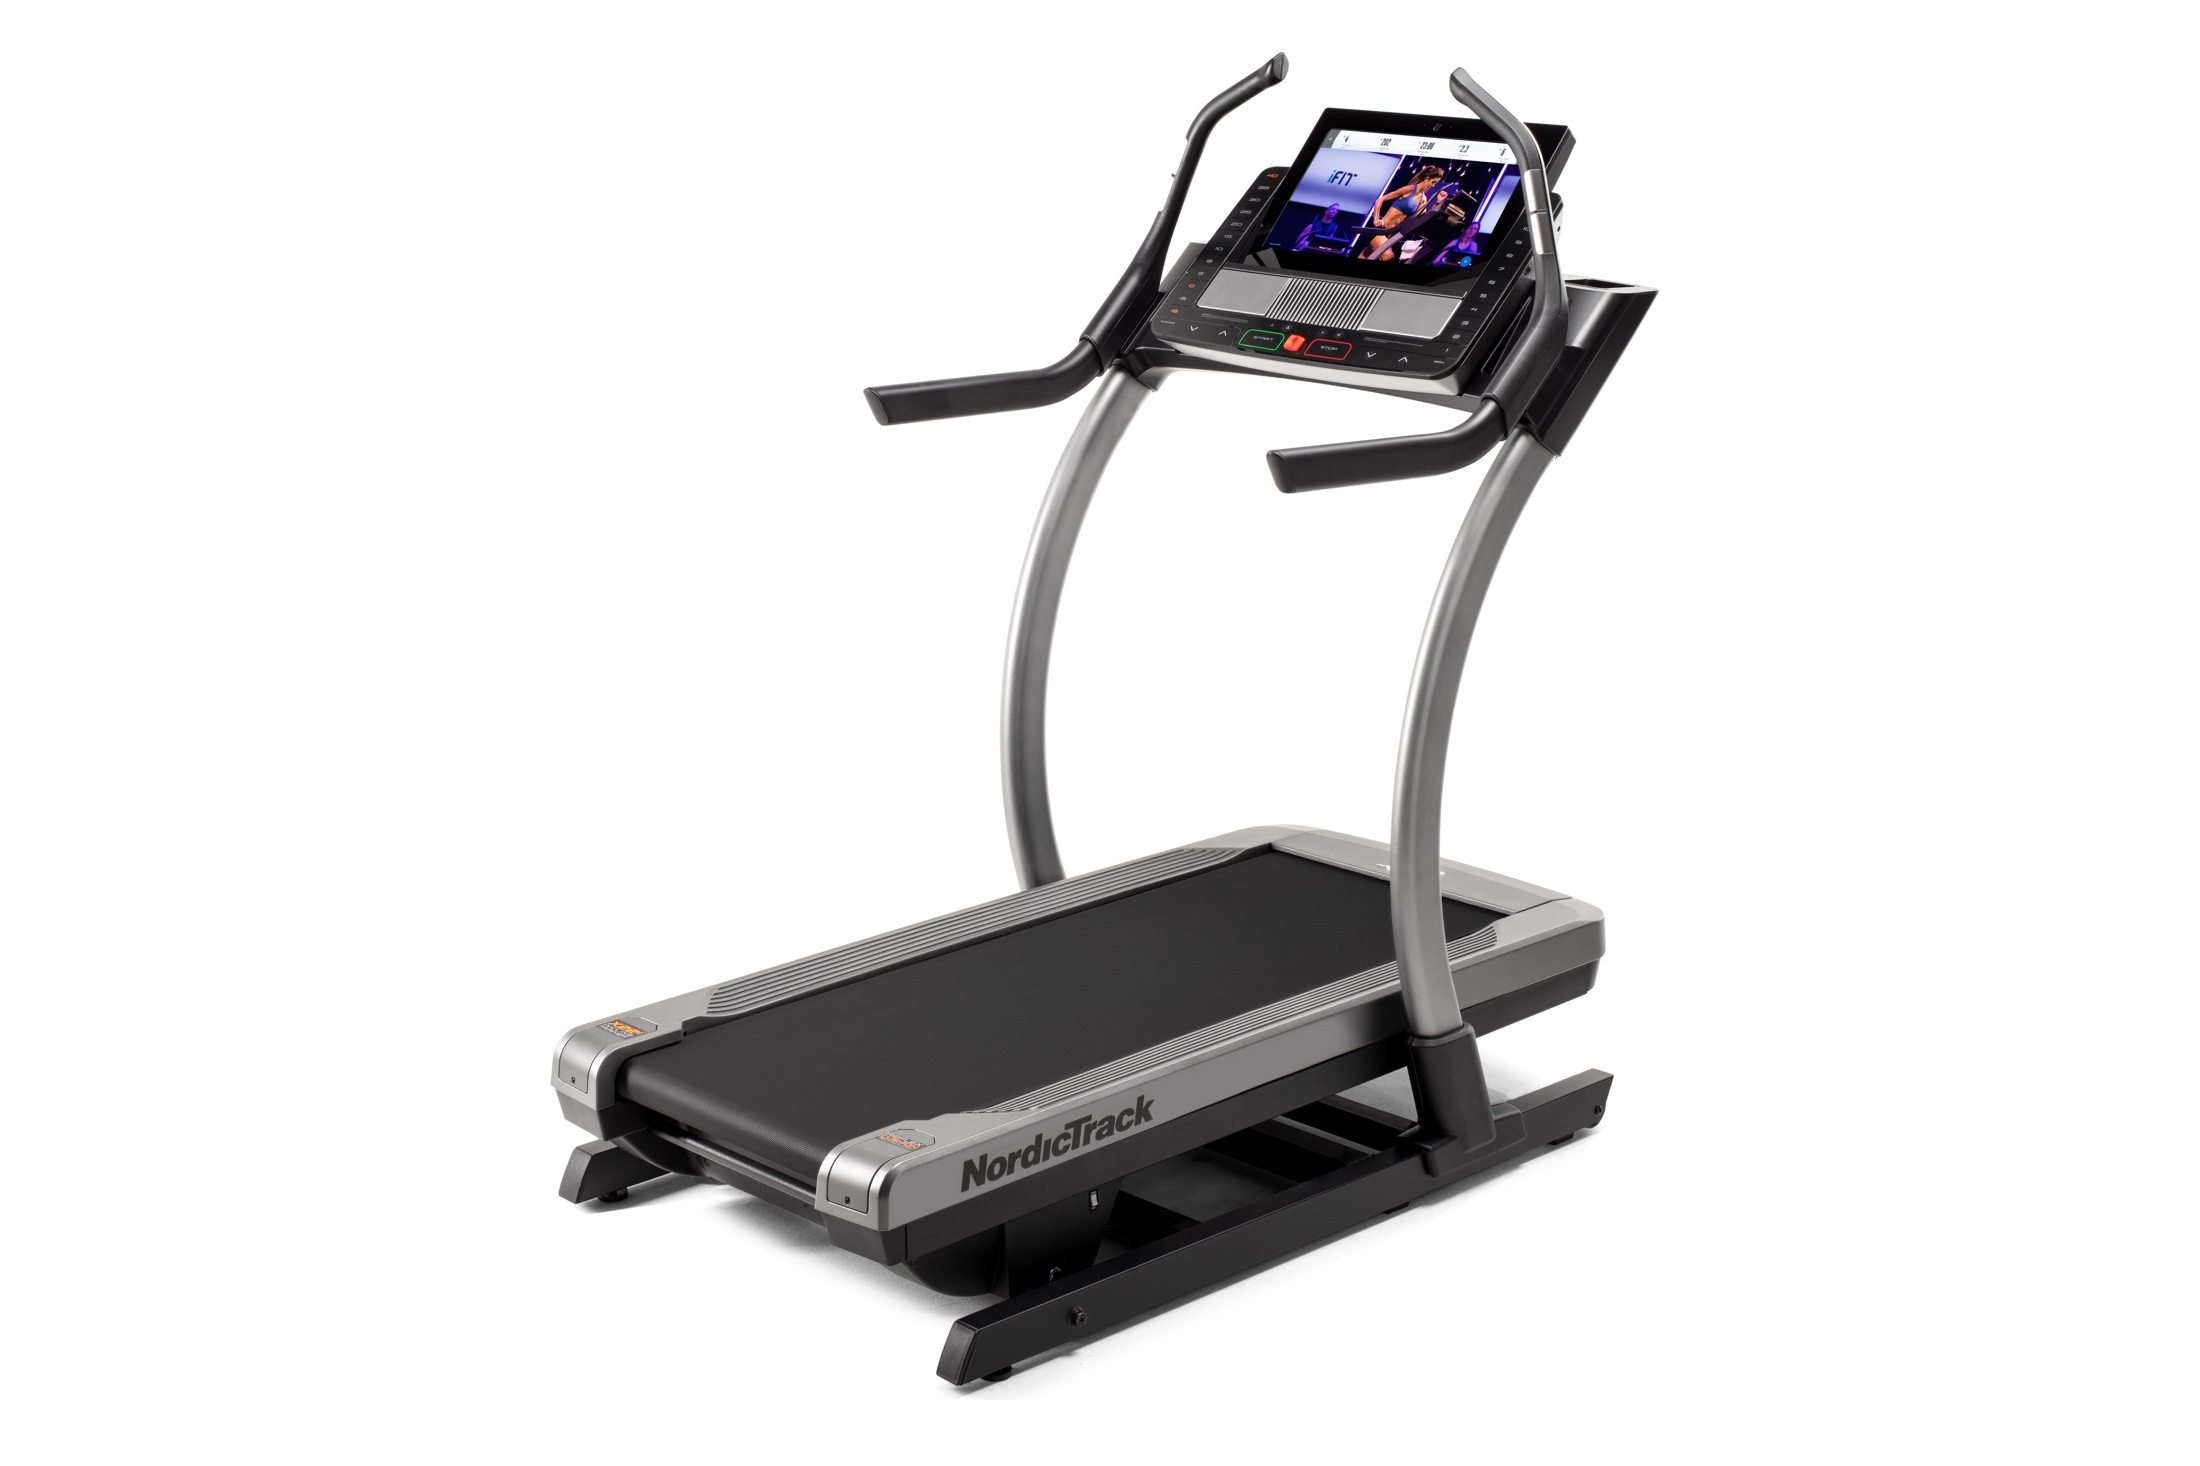 NordicTrack X22i Incline Trainer gallery image 1